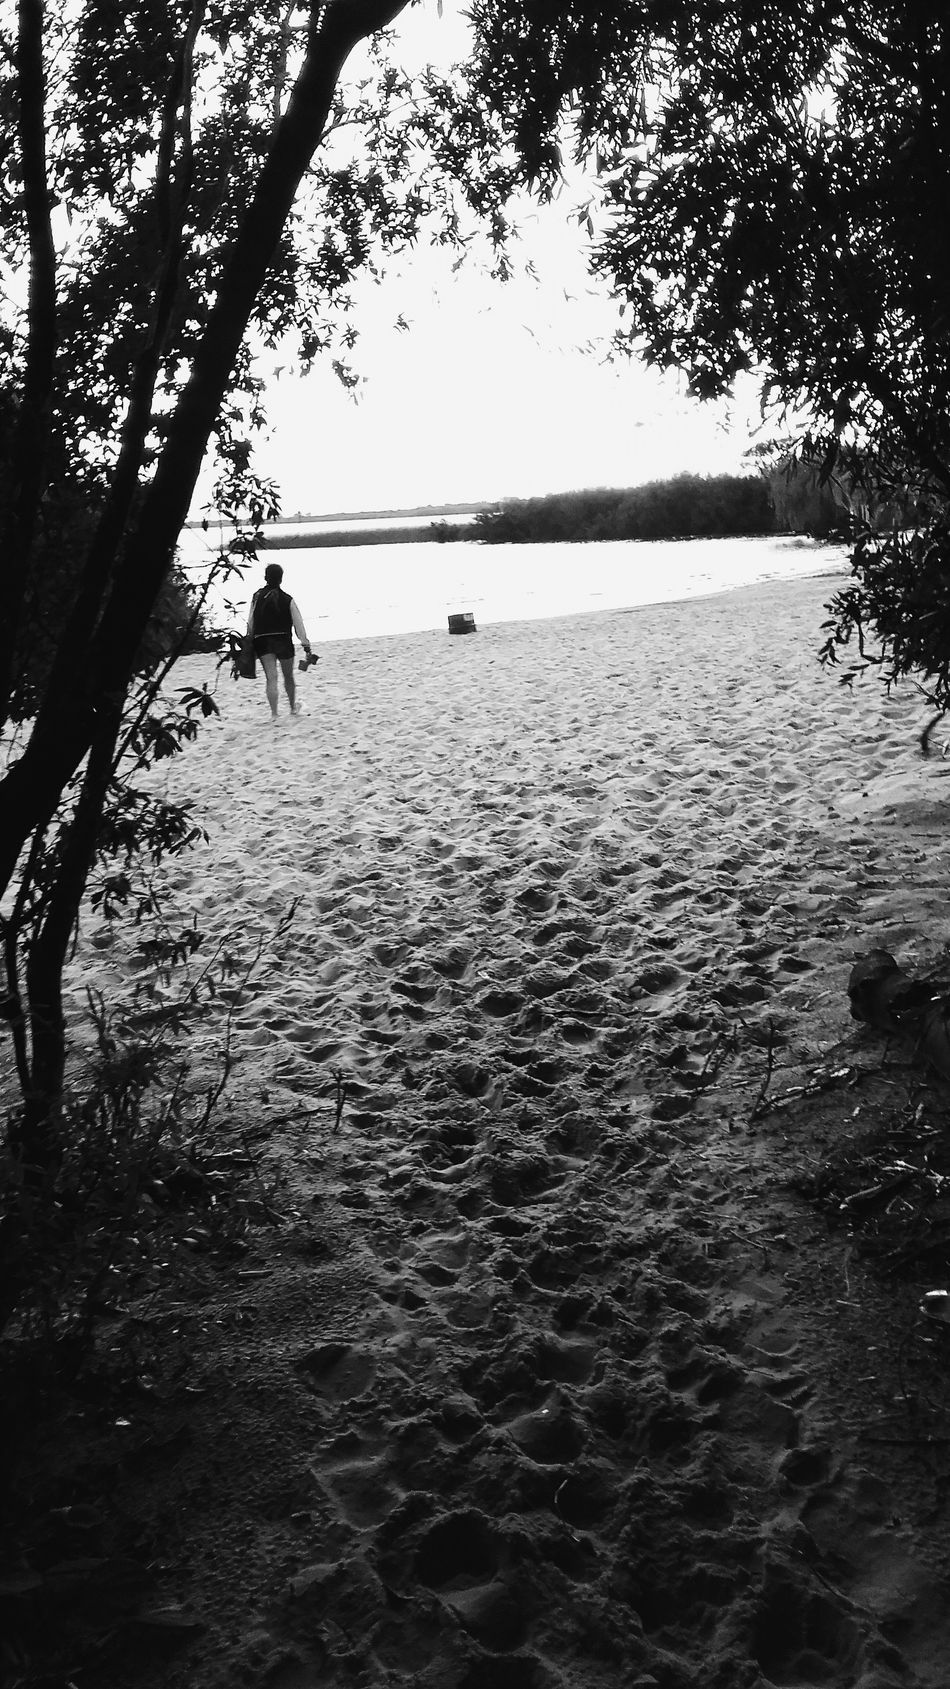 Vscocam Playa BeachOutside Camino Arboles , Naturaleza Blackandwhite Photography Blackandwhite Arena Rio Huellas Hidden Gems  Hiddengems